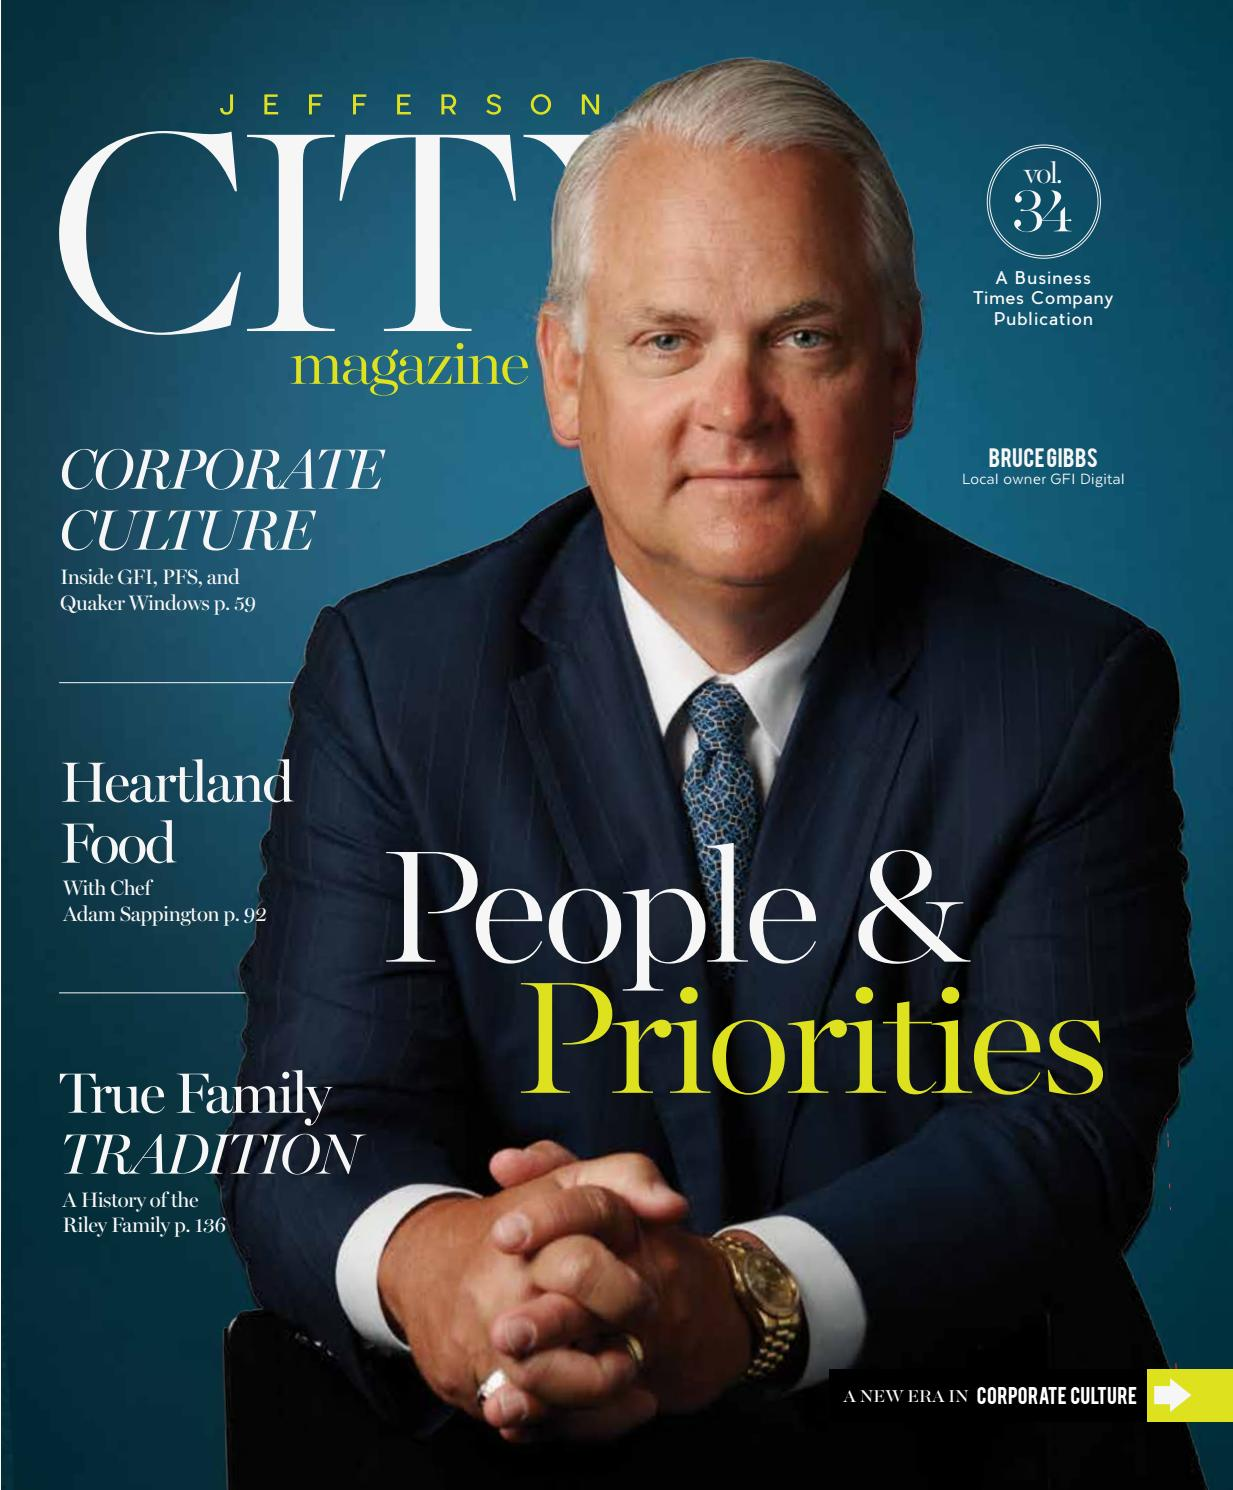 Jefferson City Magazine July August 2016 By Business Times Company